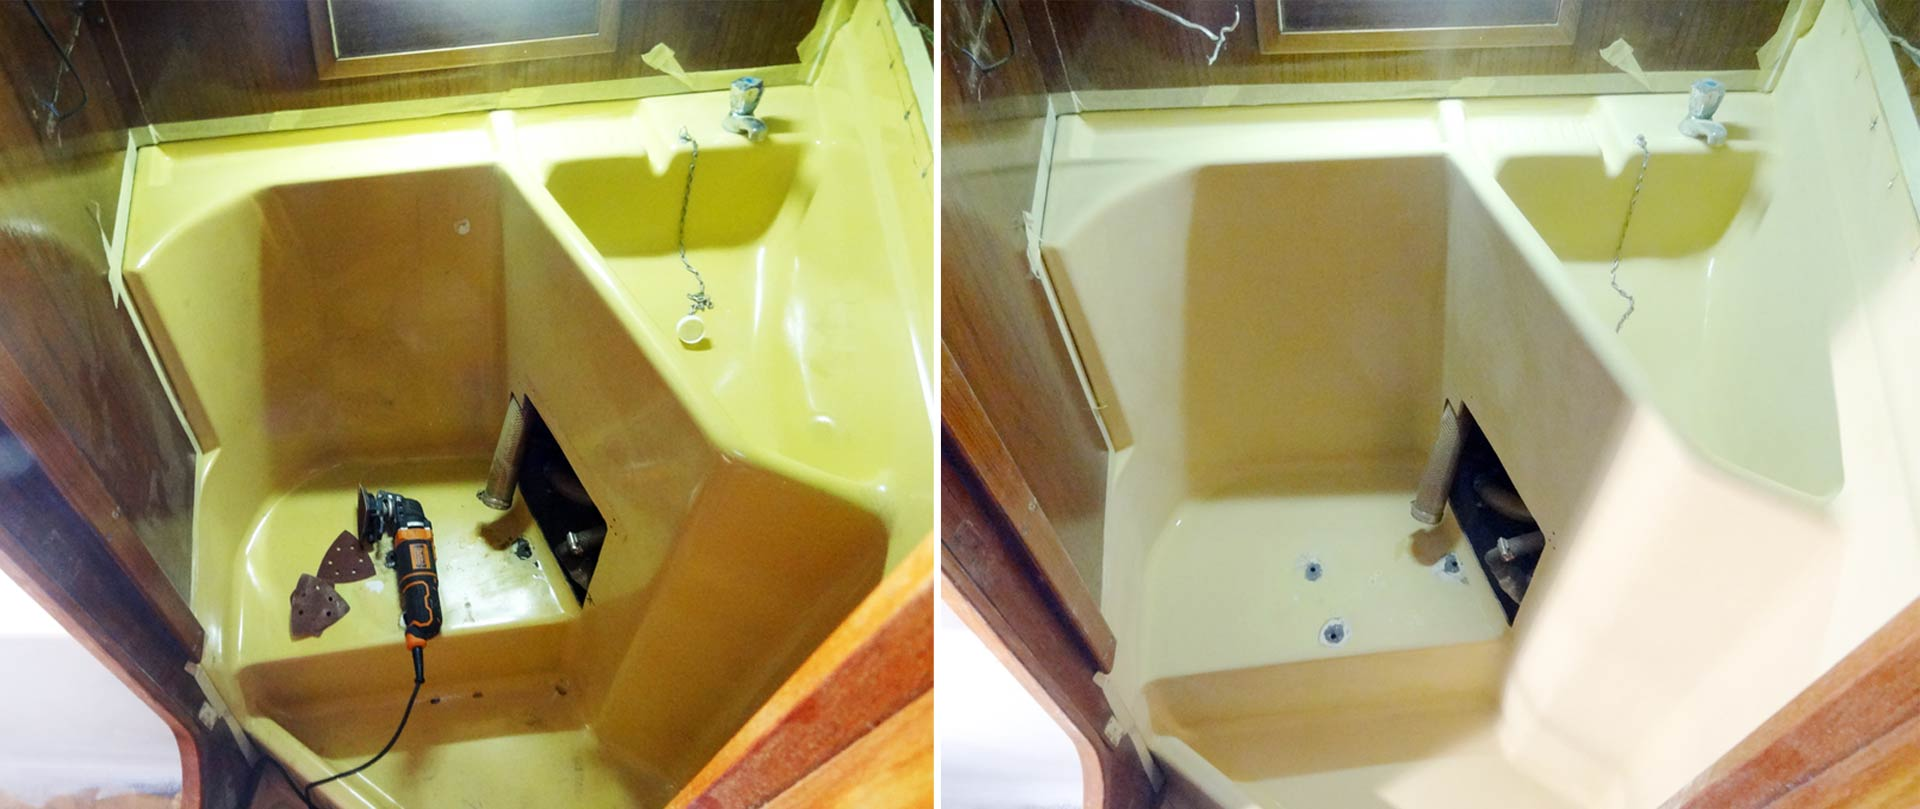 Small but nice: The KIng´s Cruiser 33 Lavatory